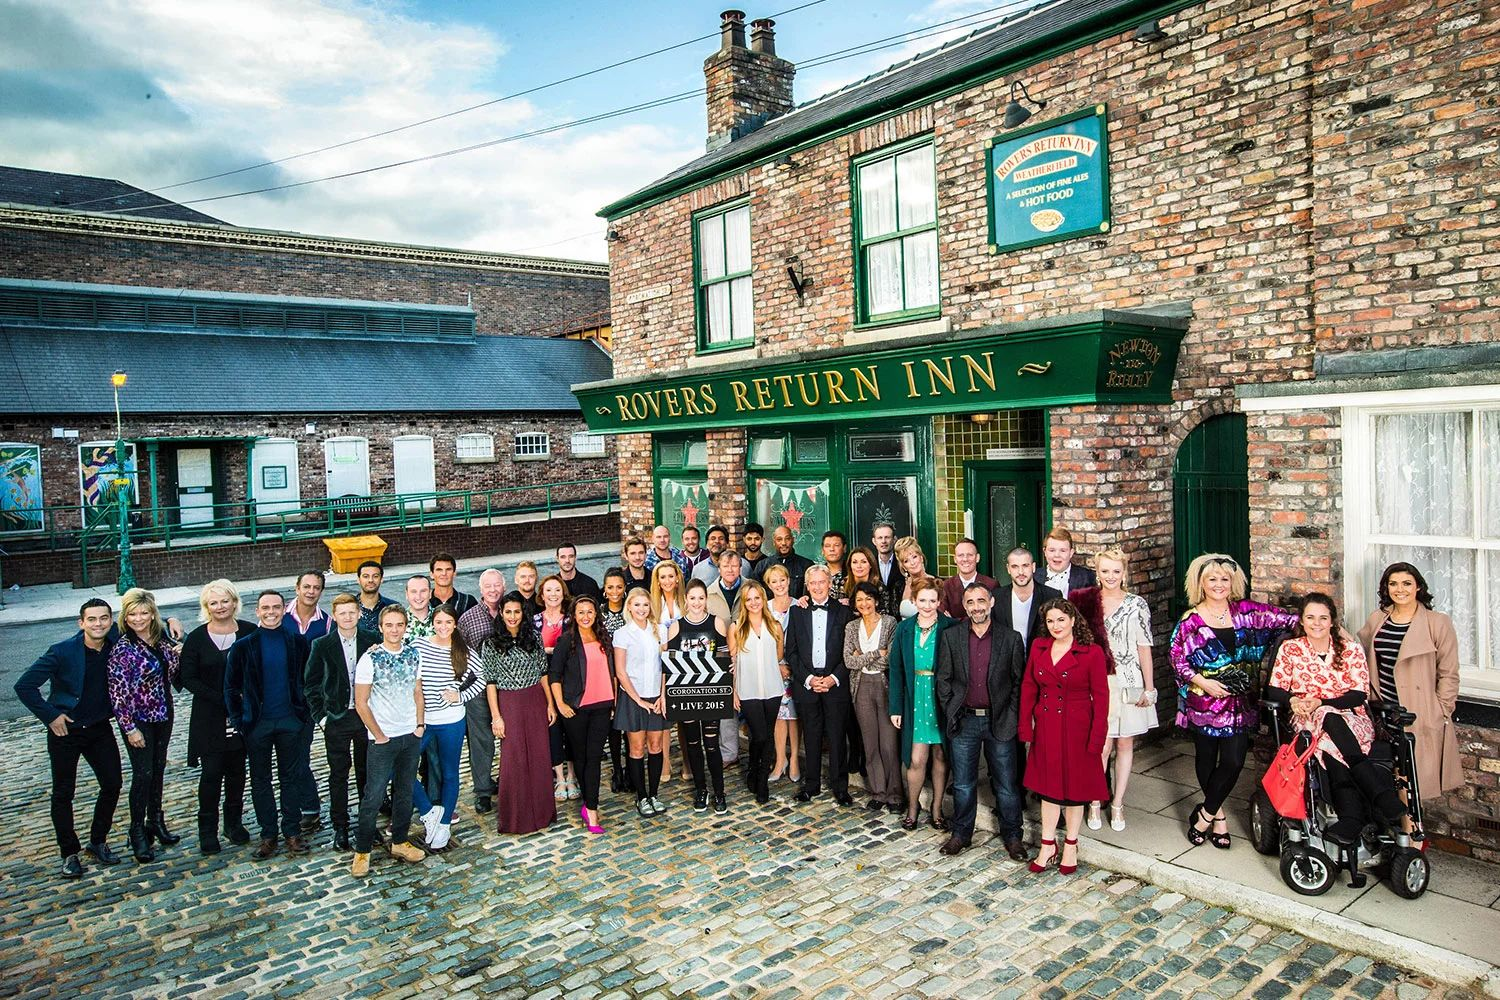 Coronation street to air extra weekly episode from 2017